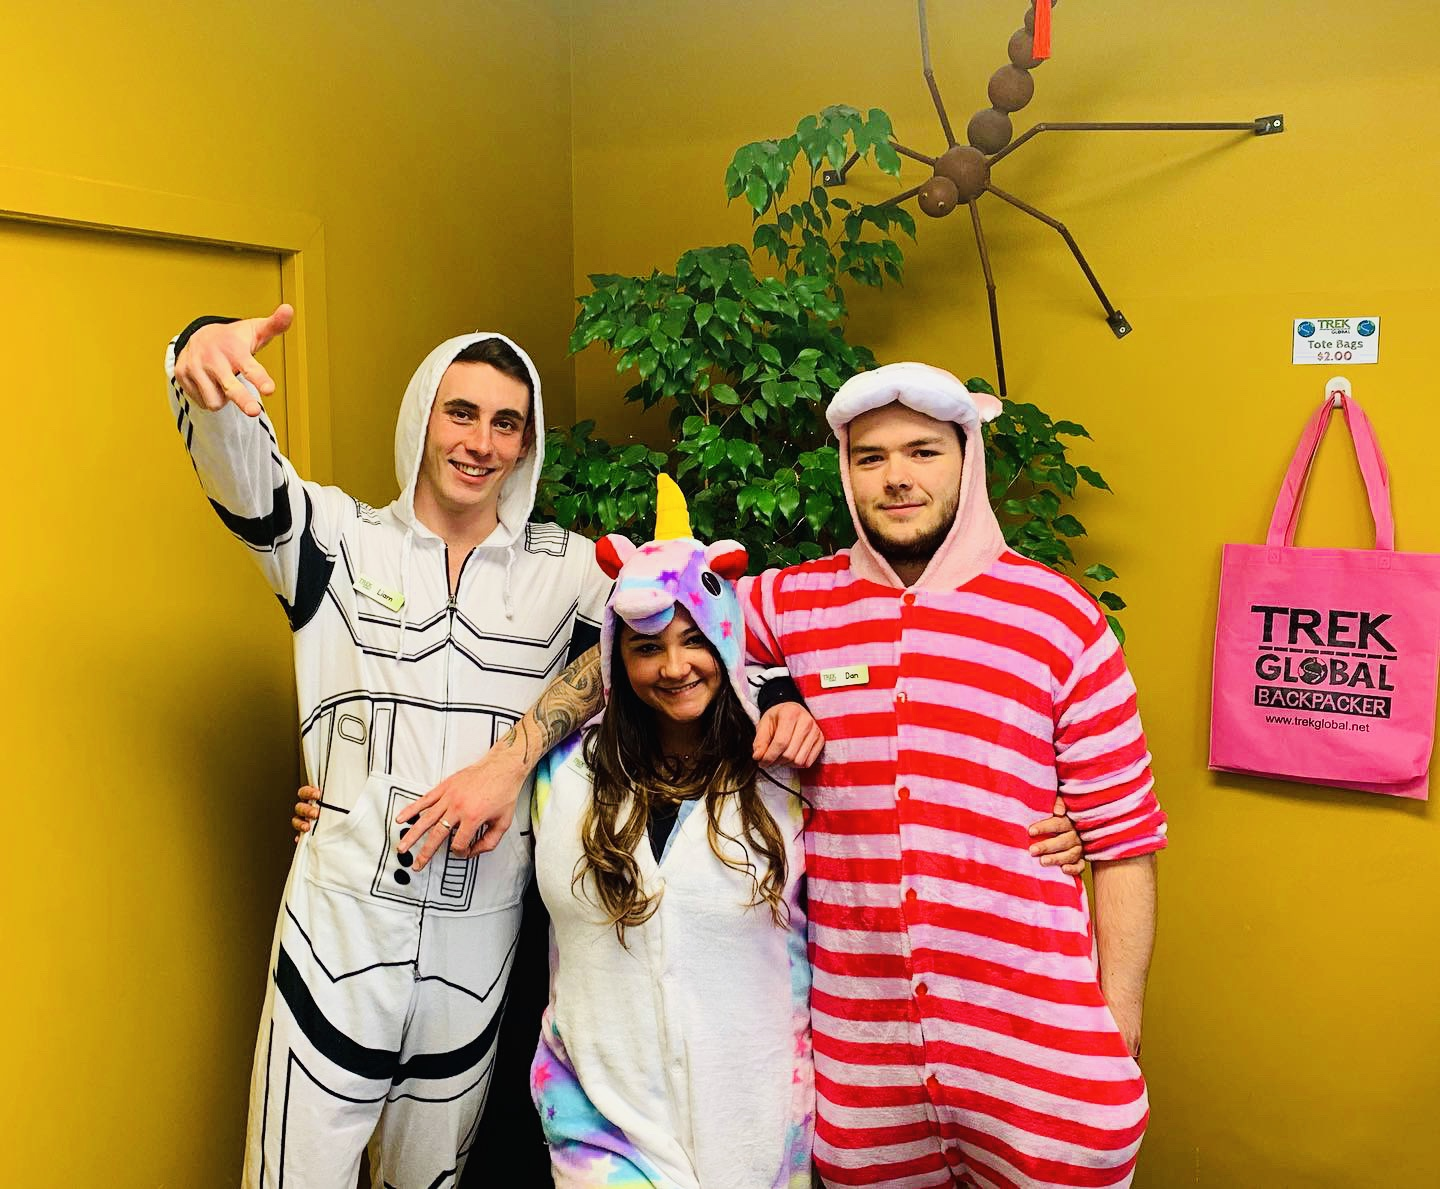 Trek Global Onesie Day